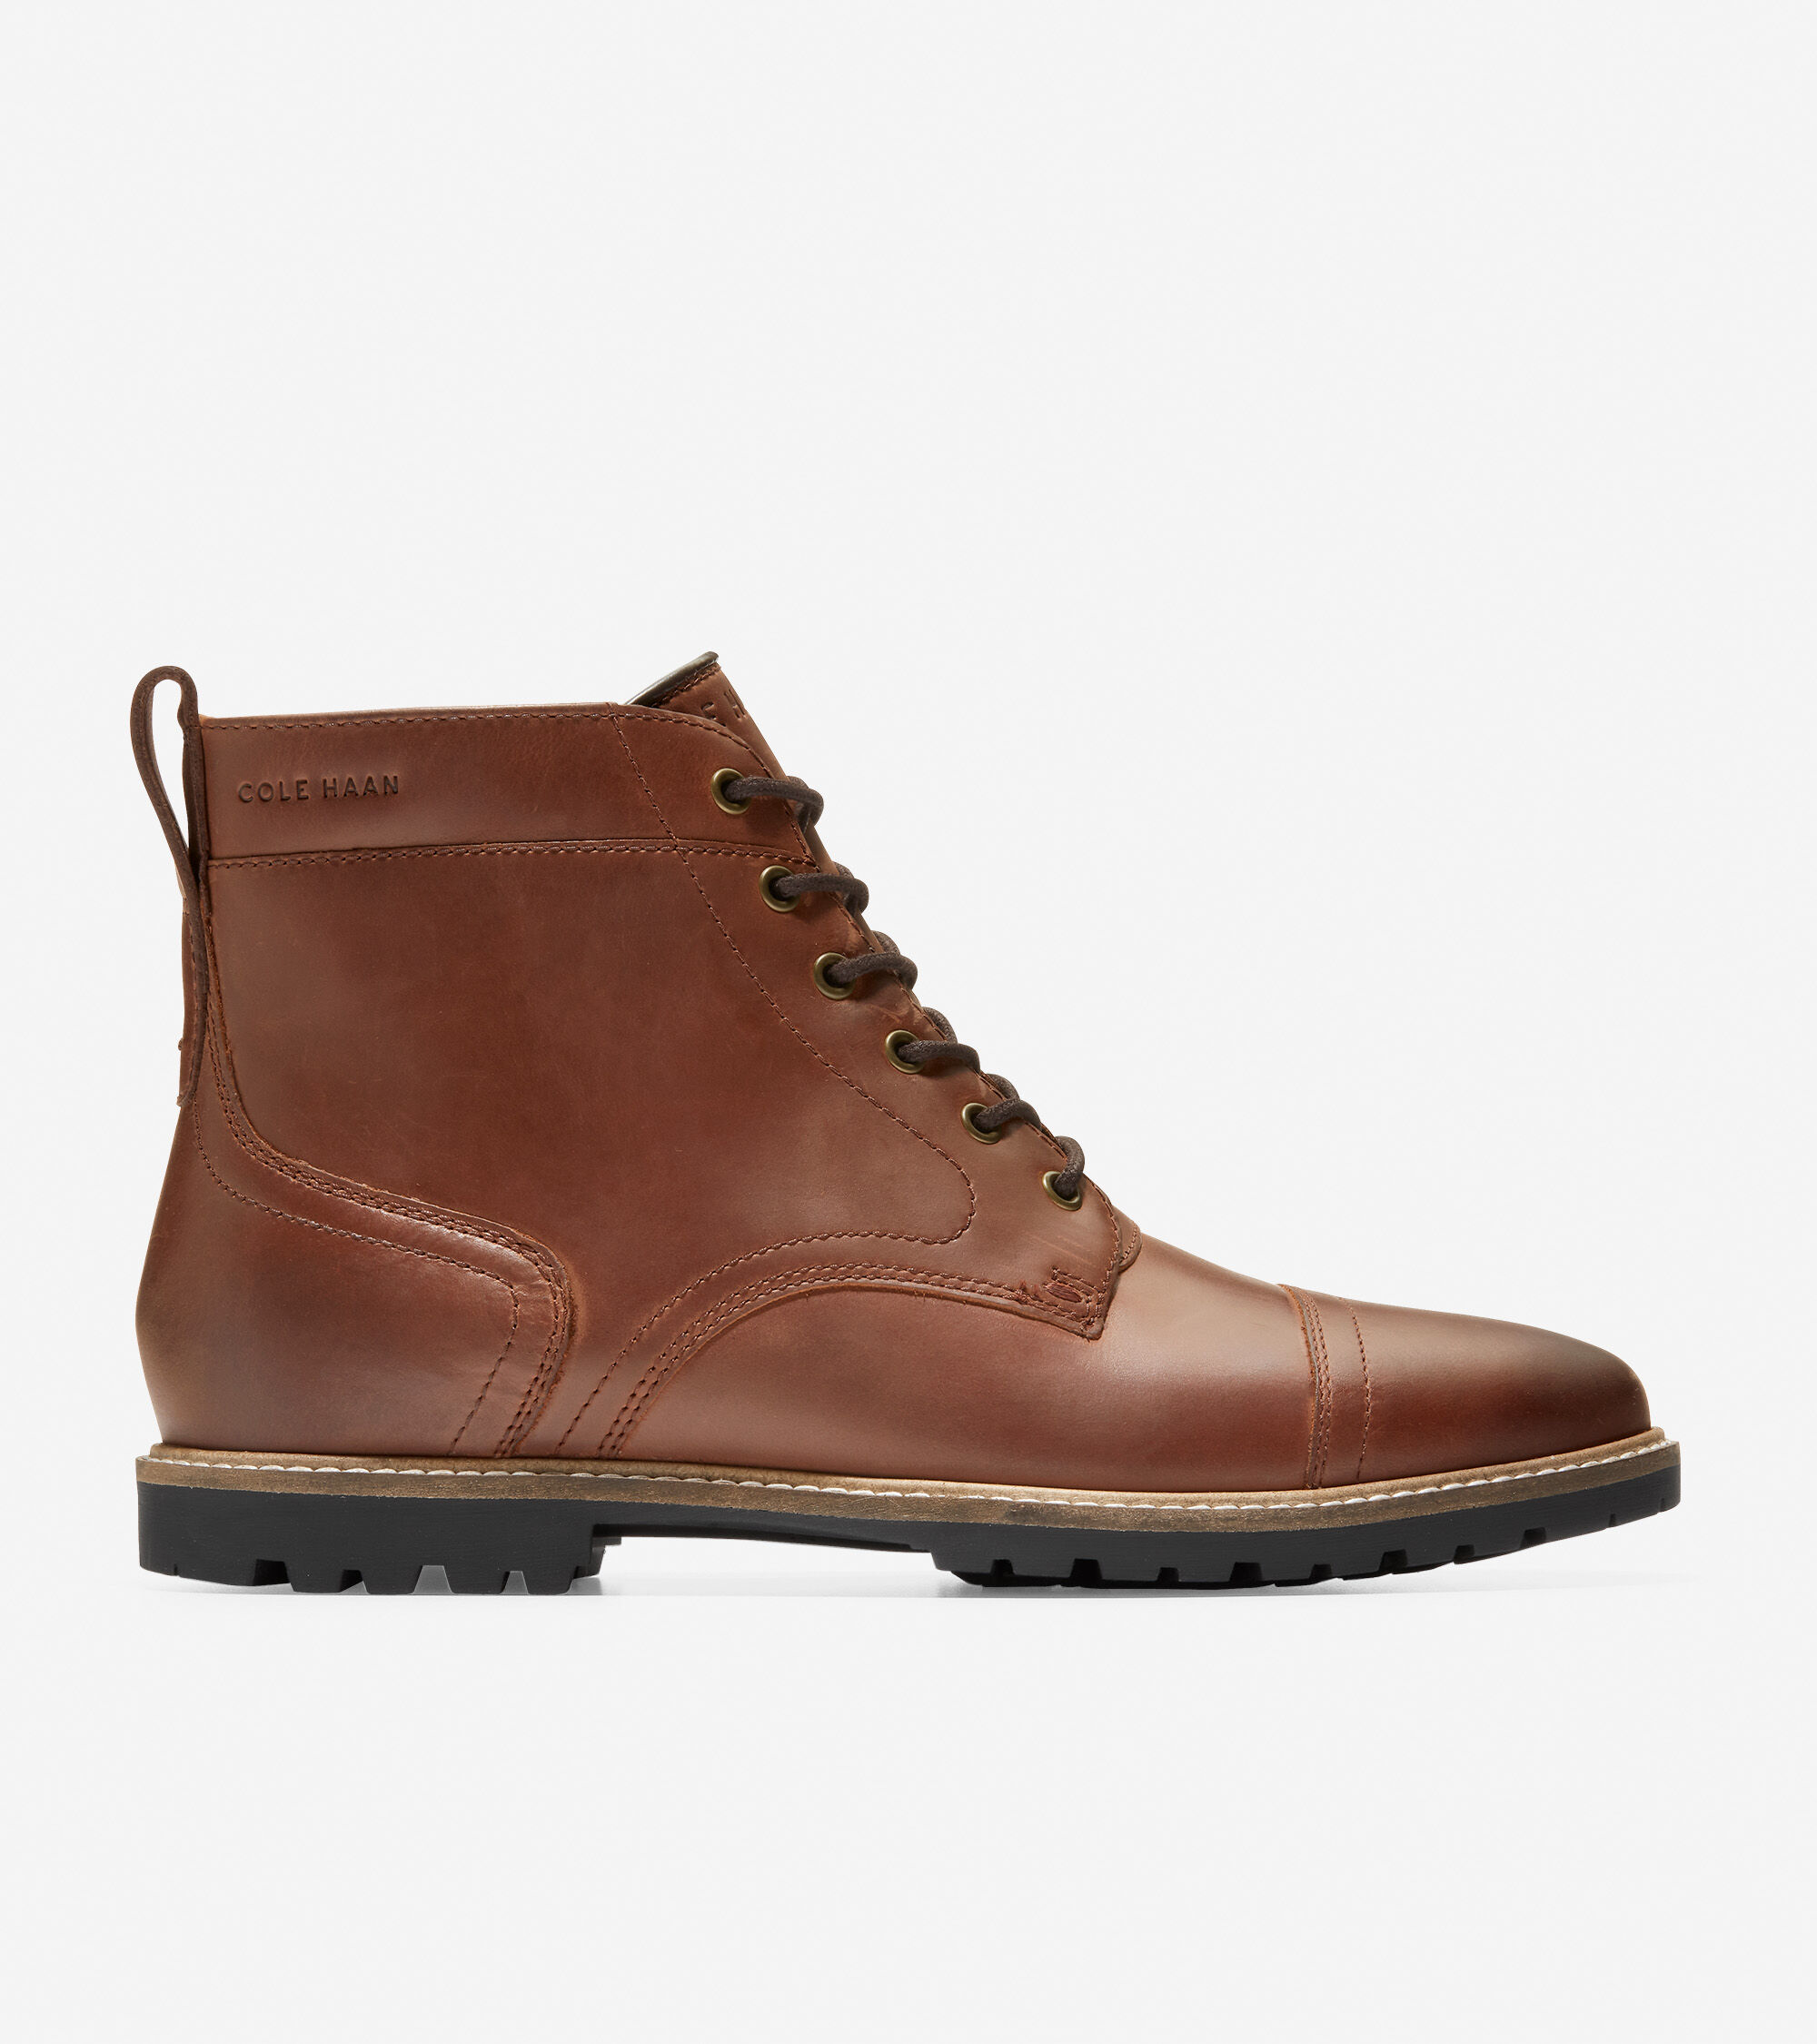 Nathan Cap Toe Boot in Chestnut Leather